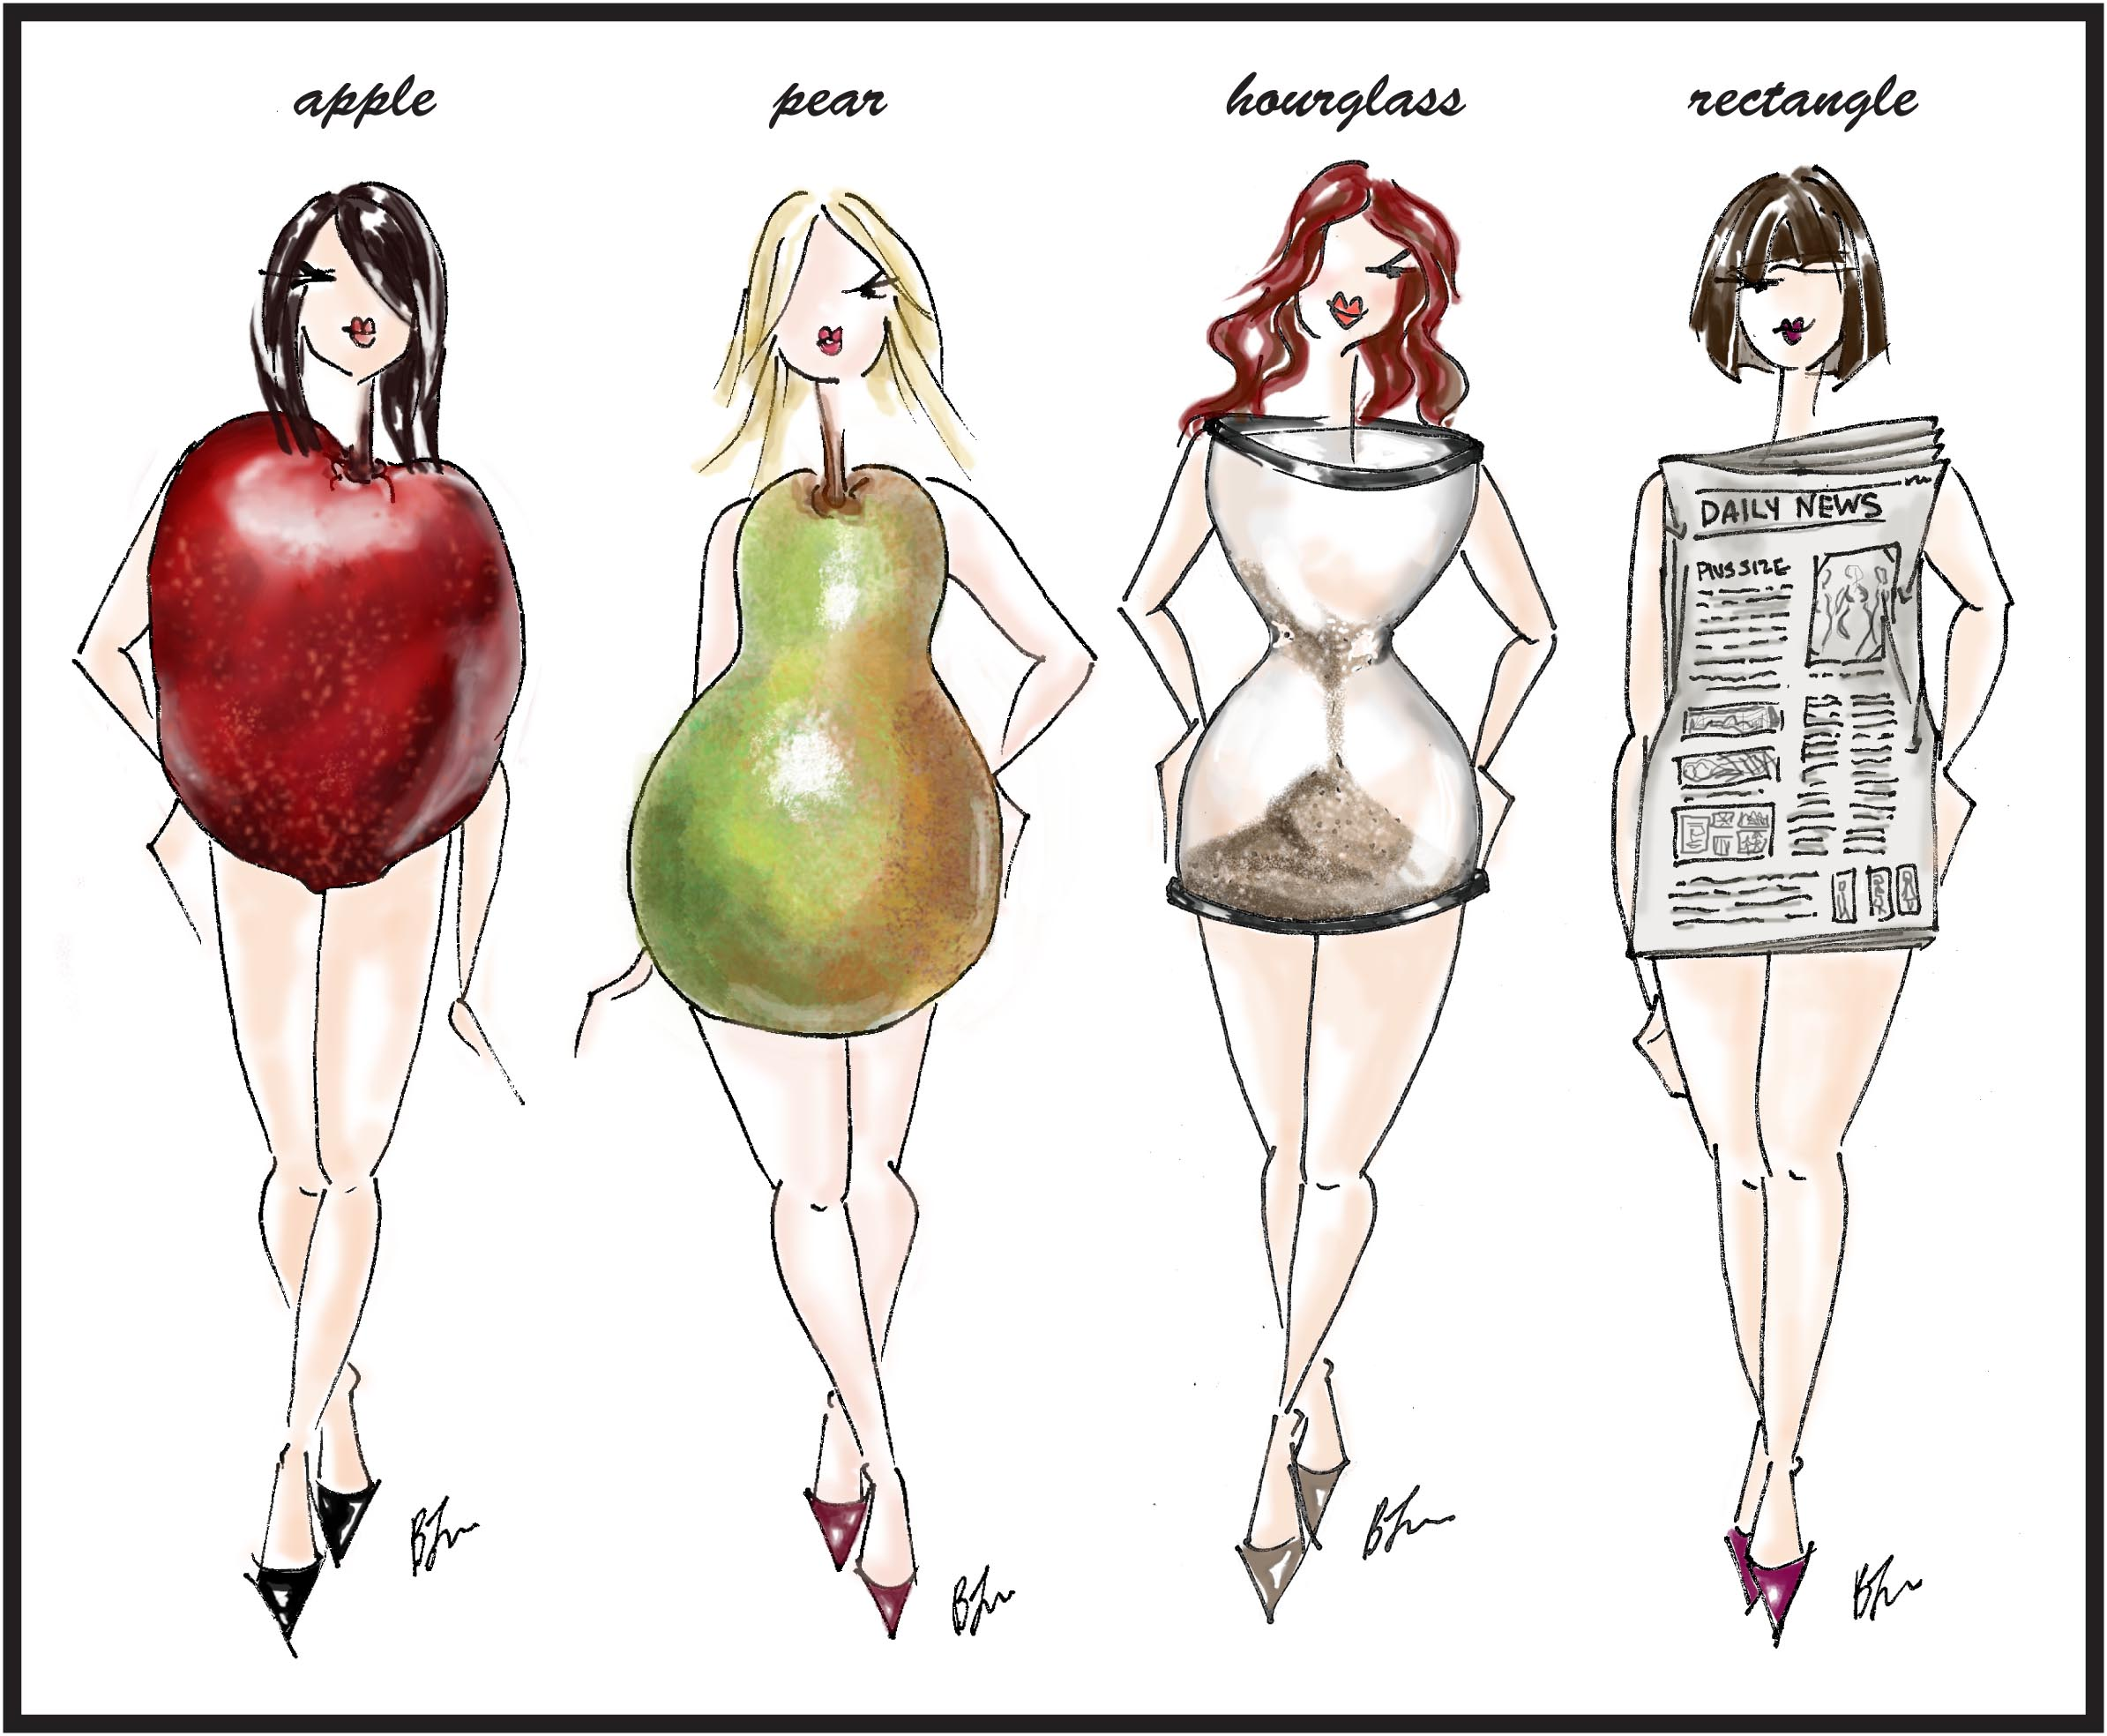 APPLE | PEAR | HOURGLASS | RECTANGLE